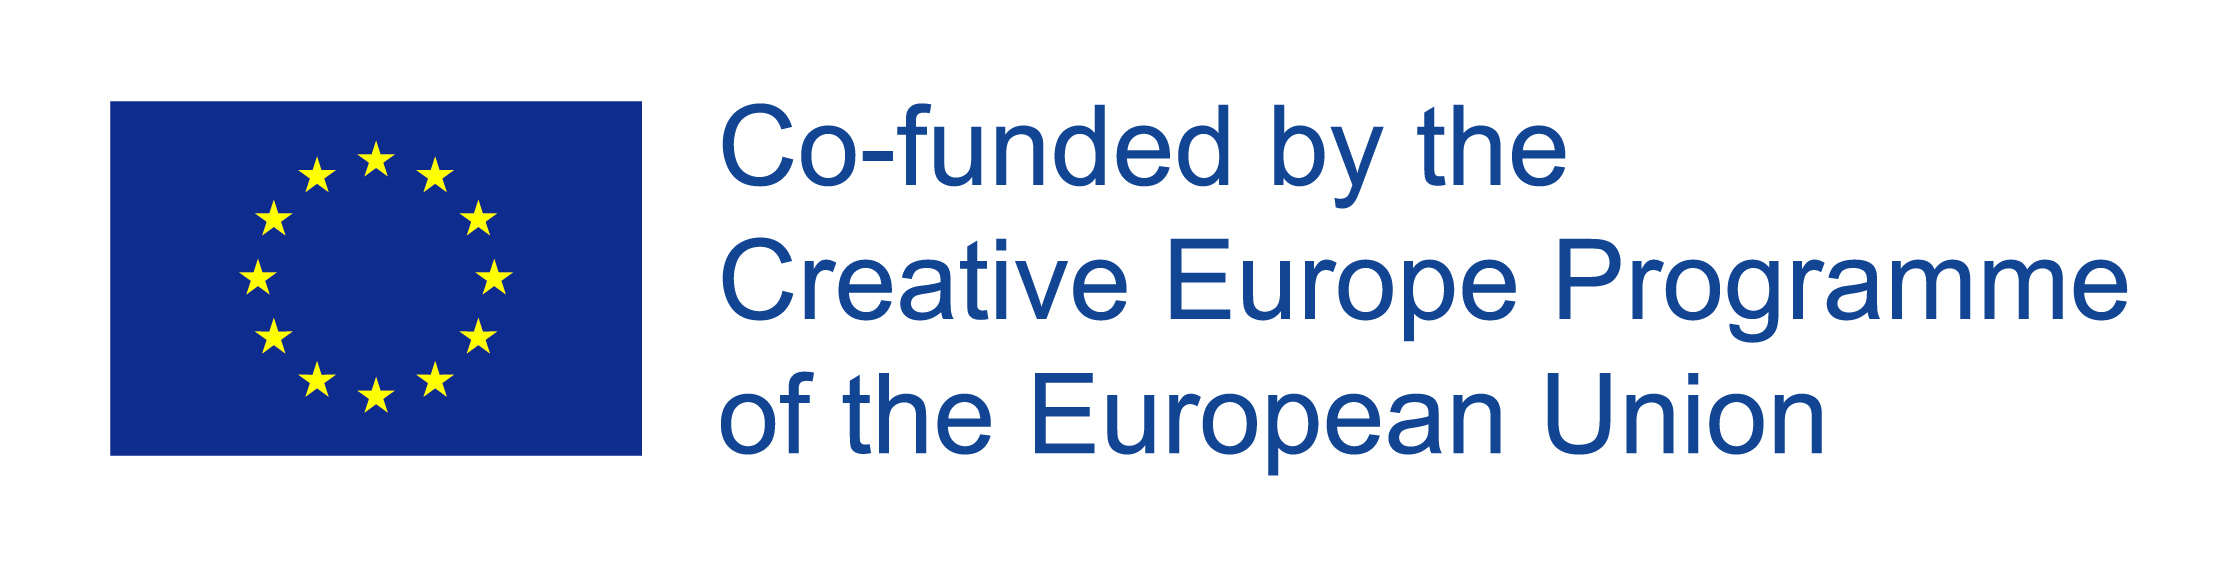 logo Co-funded by the Creative Europe Programme